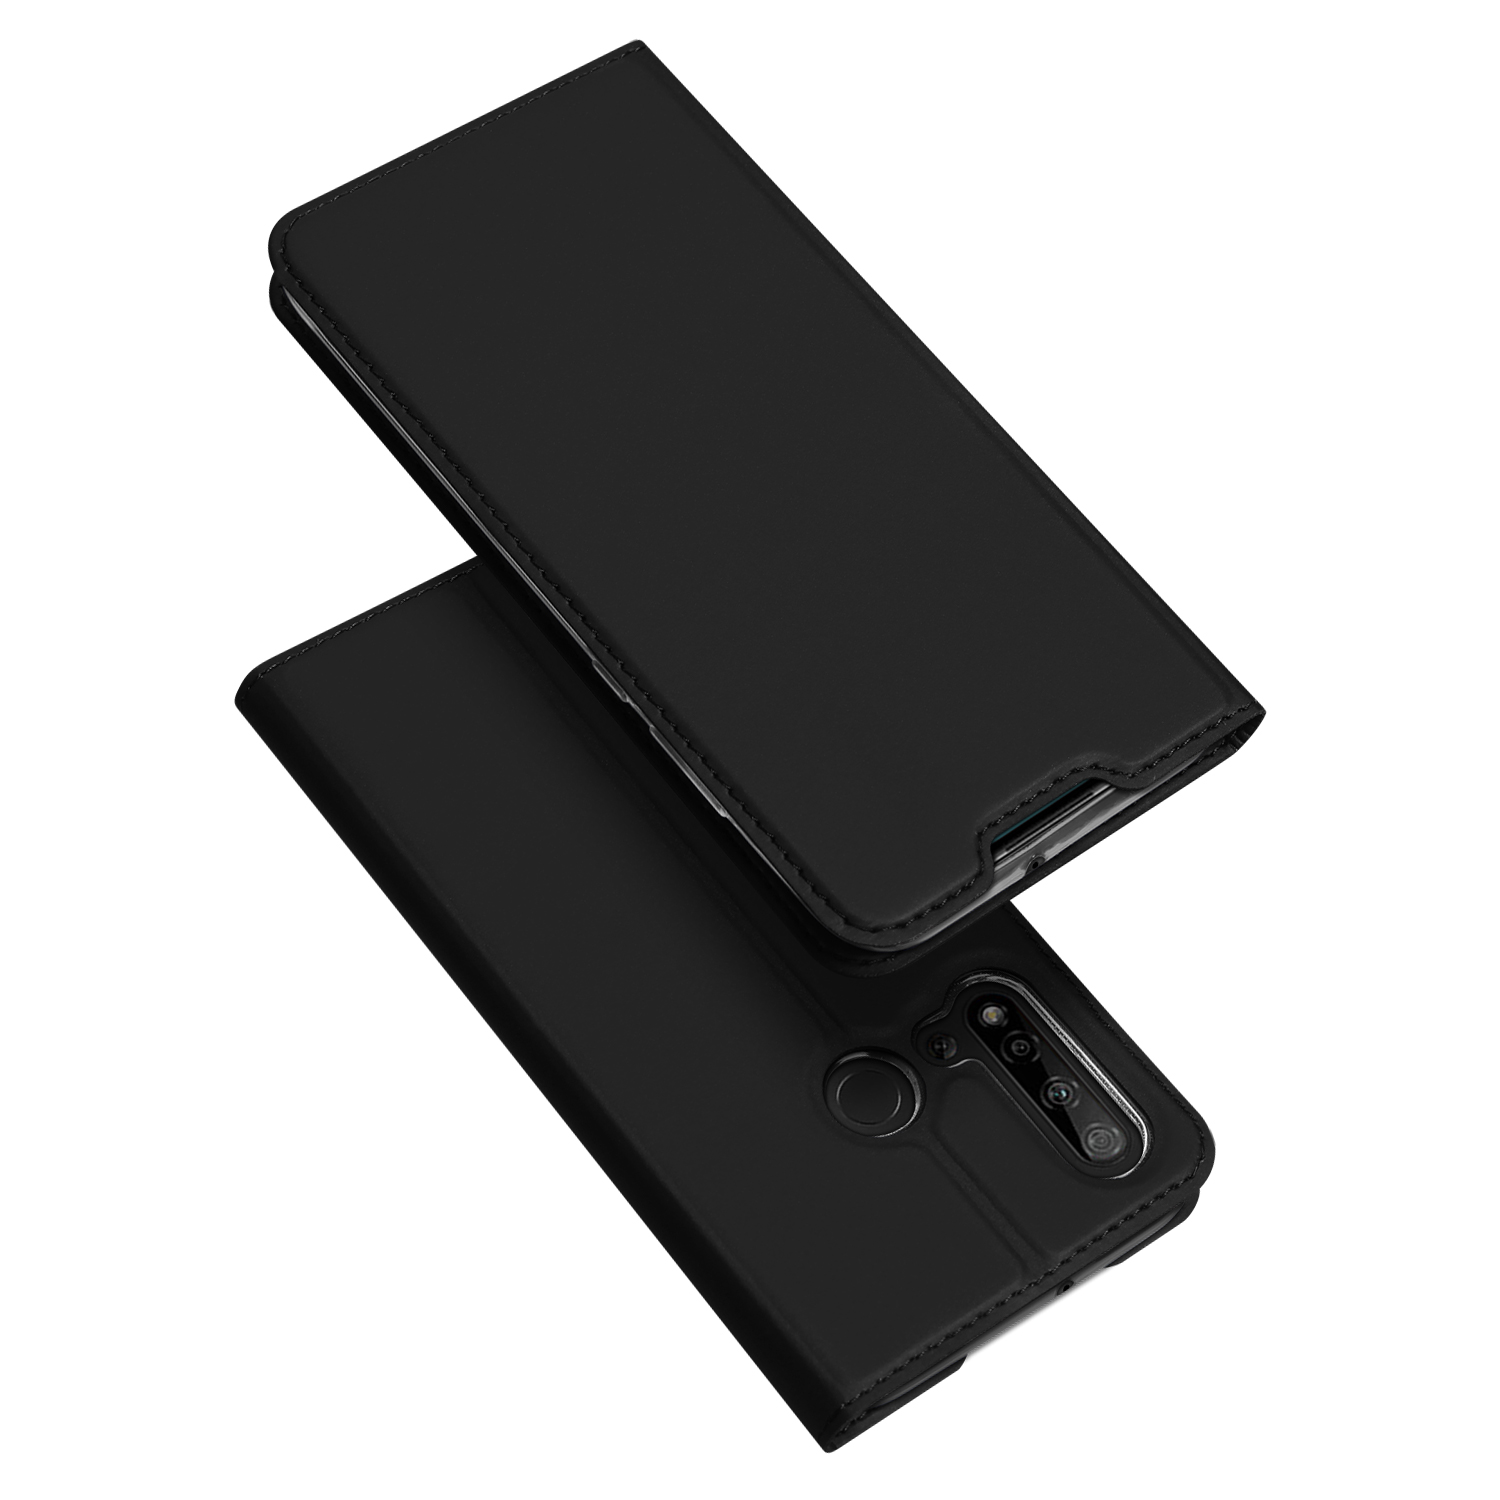 Flip Case For Huawei Nova 5i P20 Lite 2019 PU Leather TPU Soft Bumper Protective Card Slot Holder Wallet Stand Phone Cover in Flip Cases from Cellphones Telecommunications